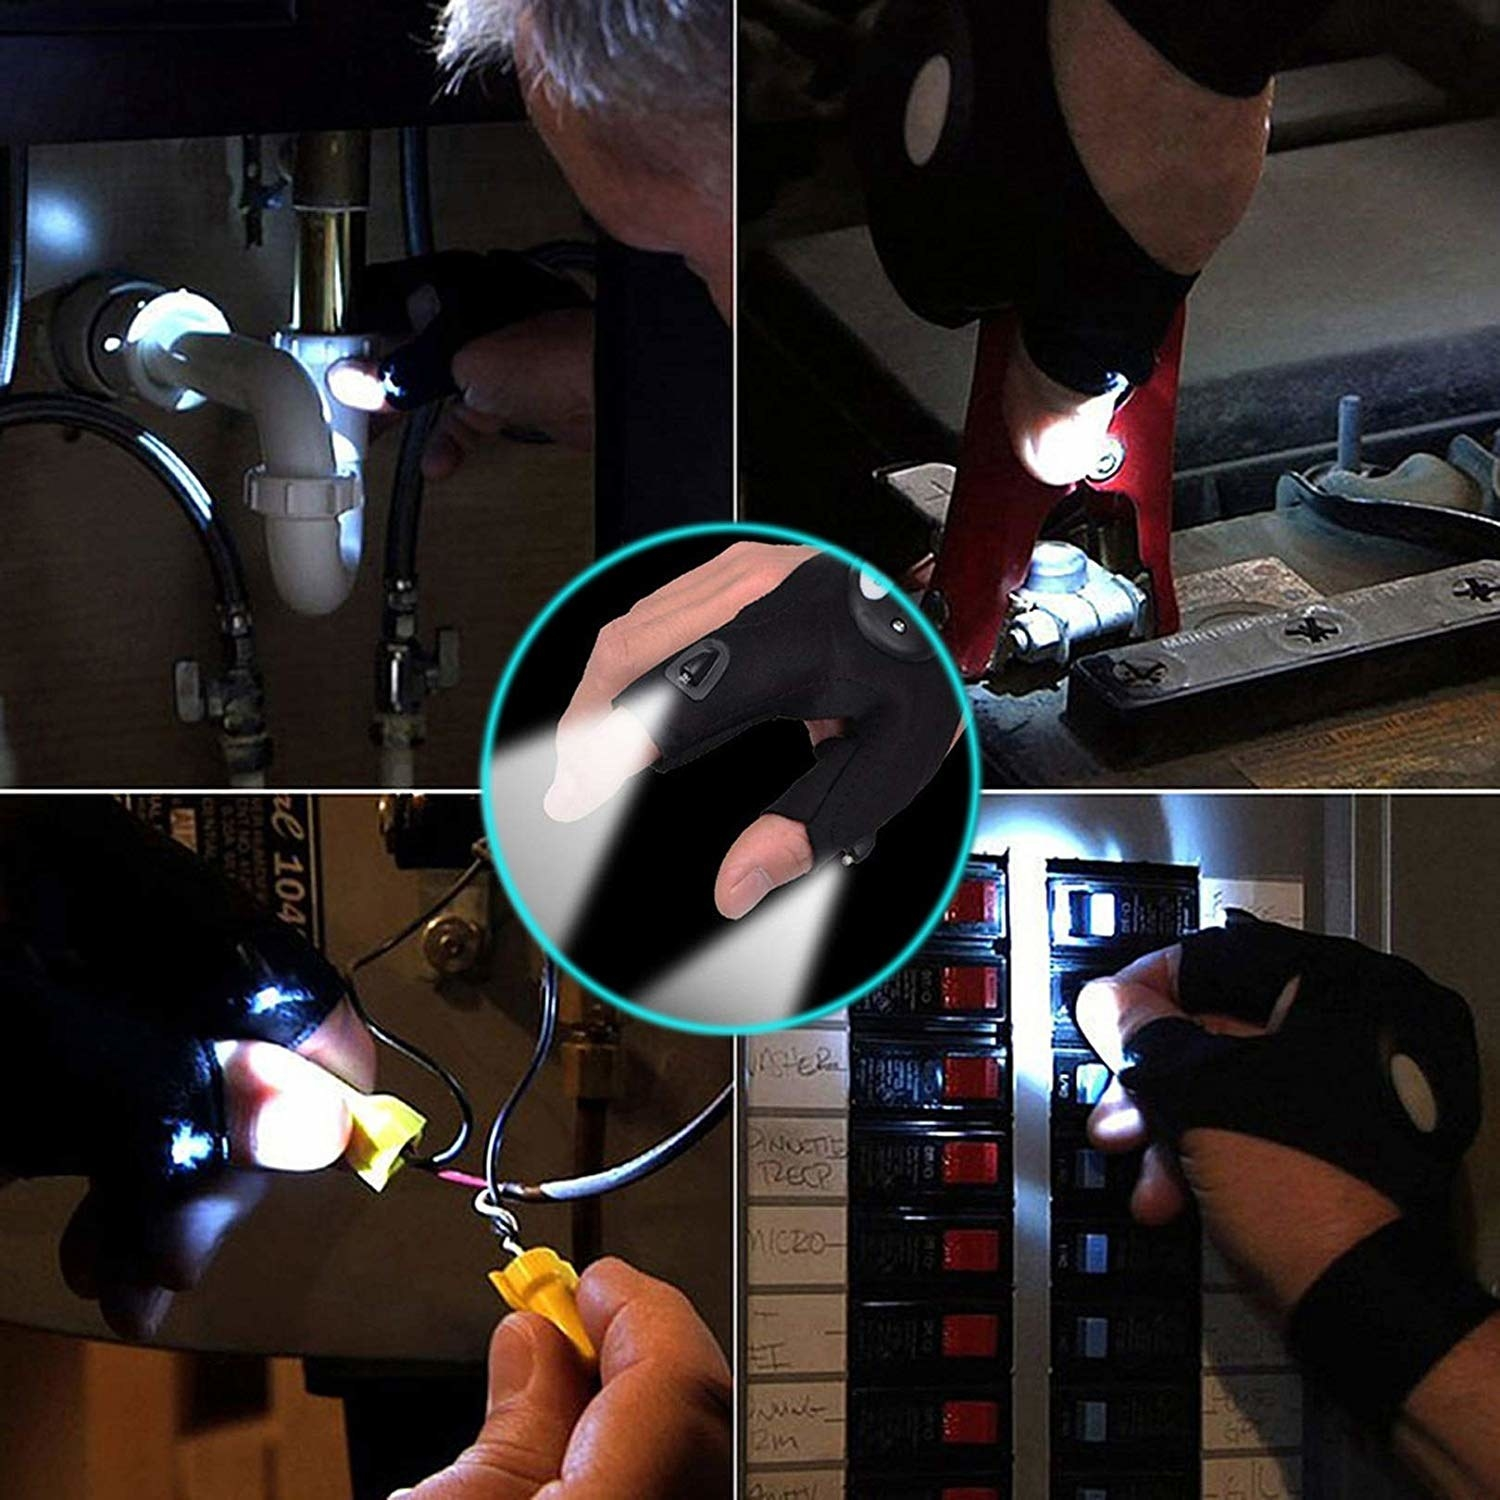 A divided photo showing different situations the light-up gloves can be used in; when working with pipes, breaker boxes, small wires, and while holding tools